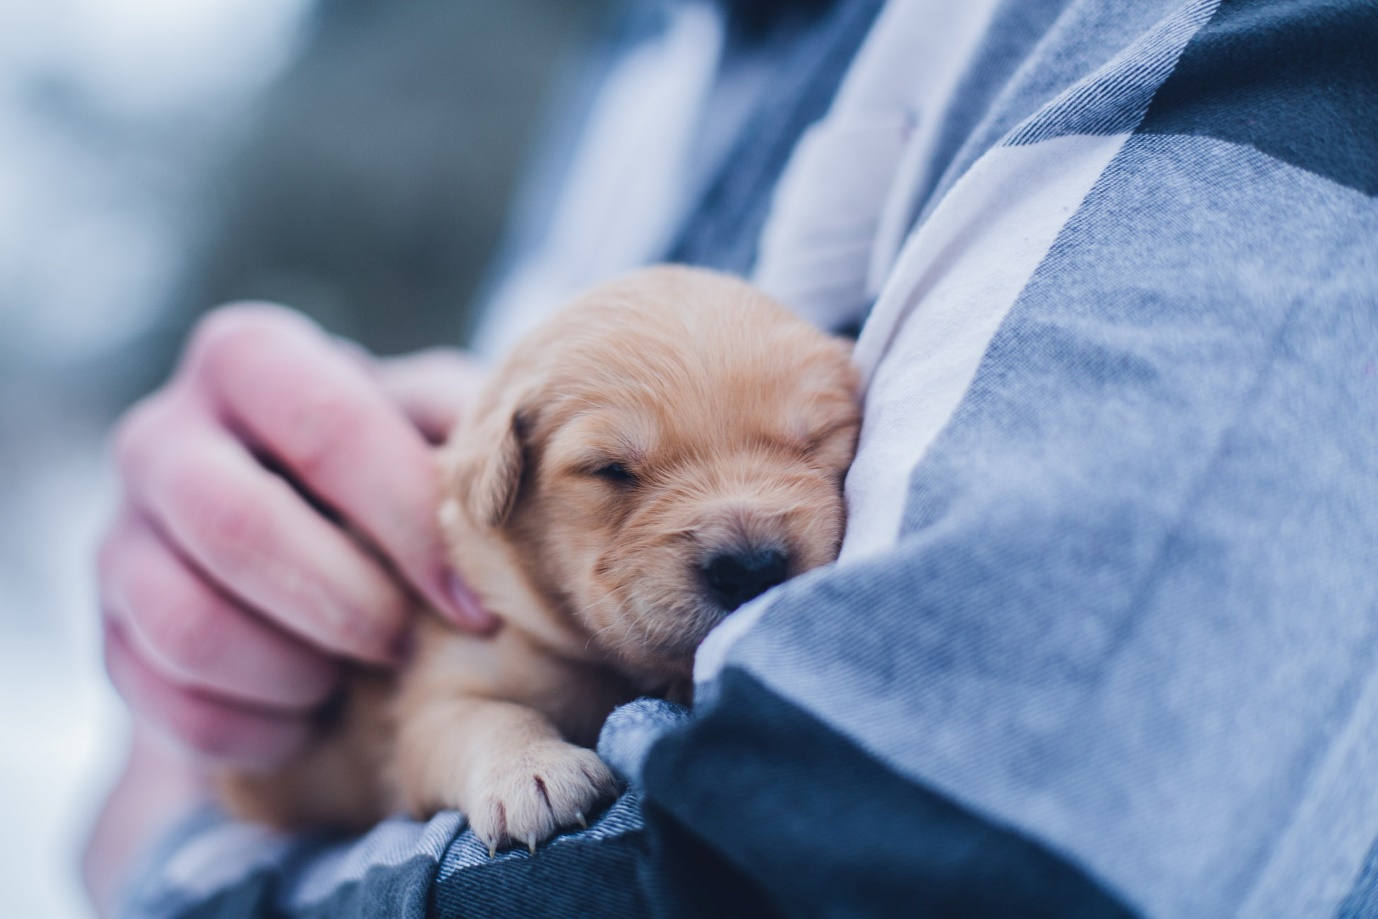 A dog sleeping on a person's lap  Description automatically generated with medium confidence